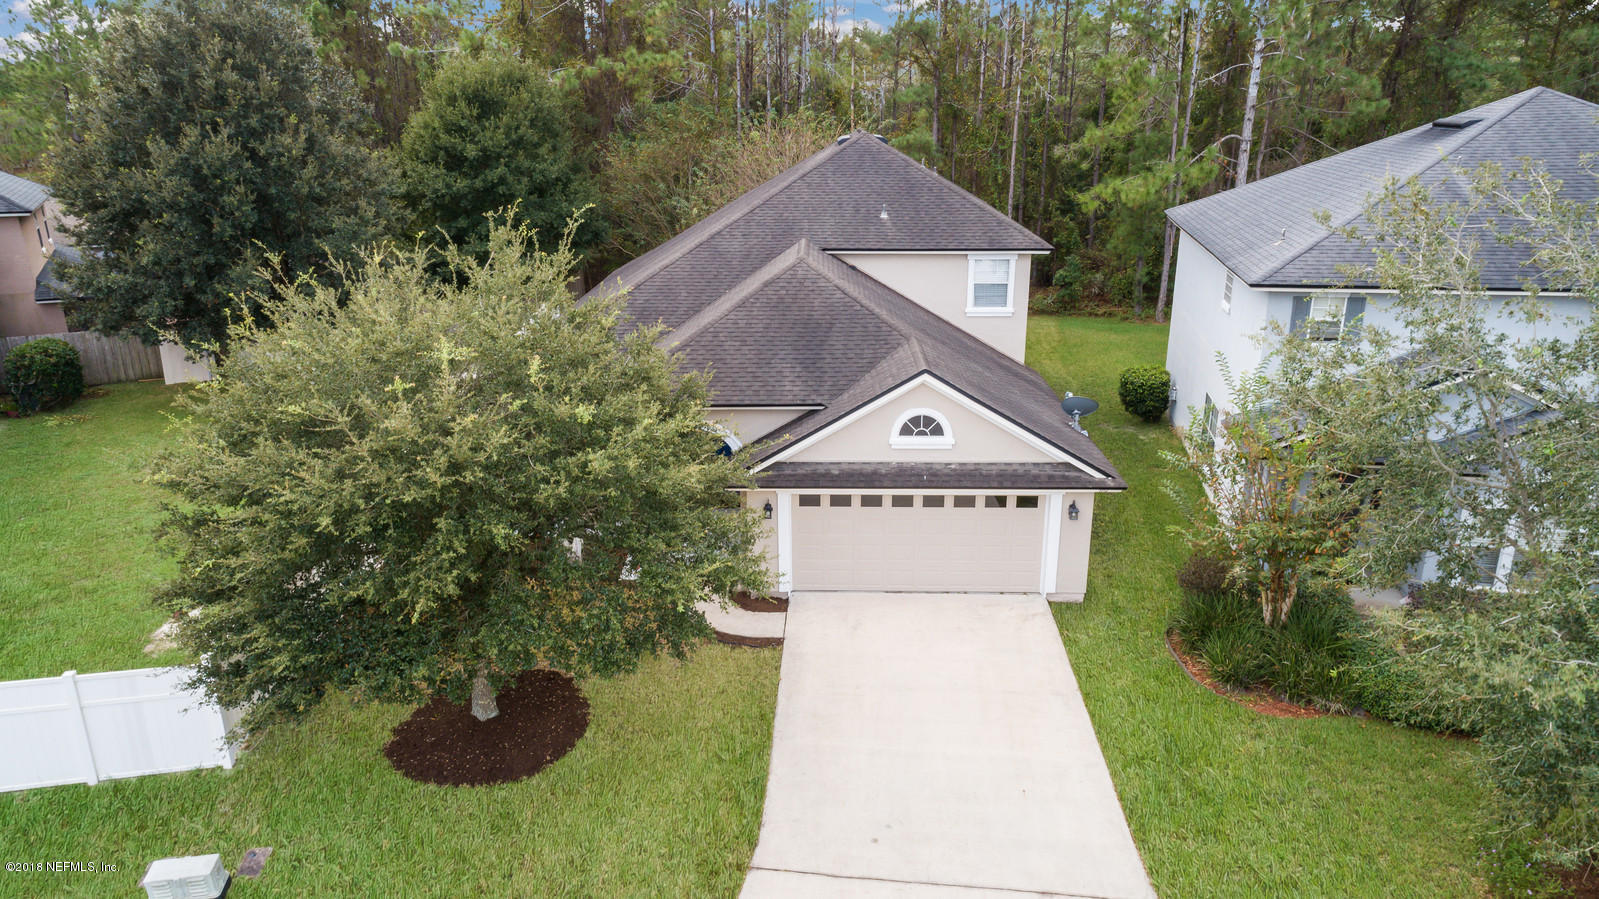 3767 PONDVIEW, ORANGE PARK, FLORIDA 32065, 4 Bedrooms Bedrooms, ,2 BathroomsBathrooms,Residential - single family,For sale,PONDVIEW,963773